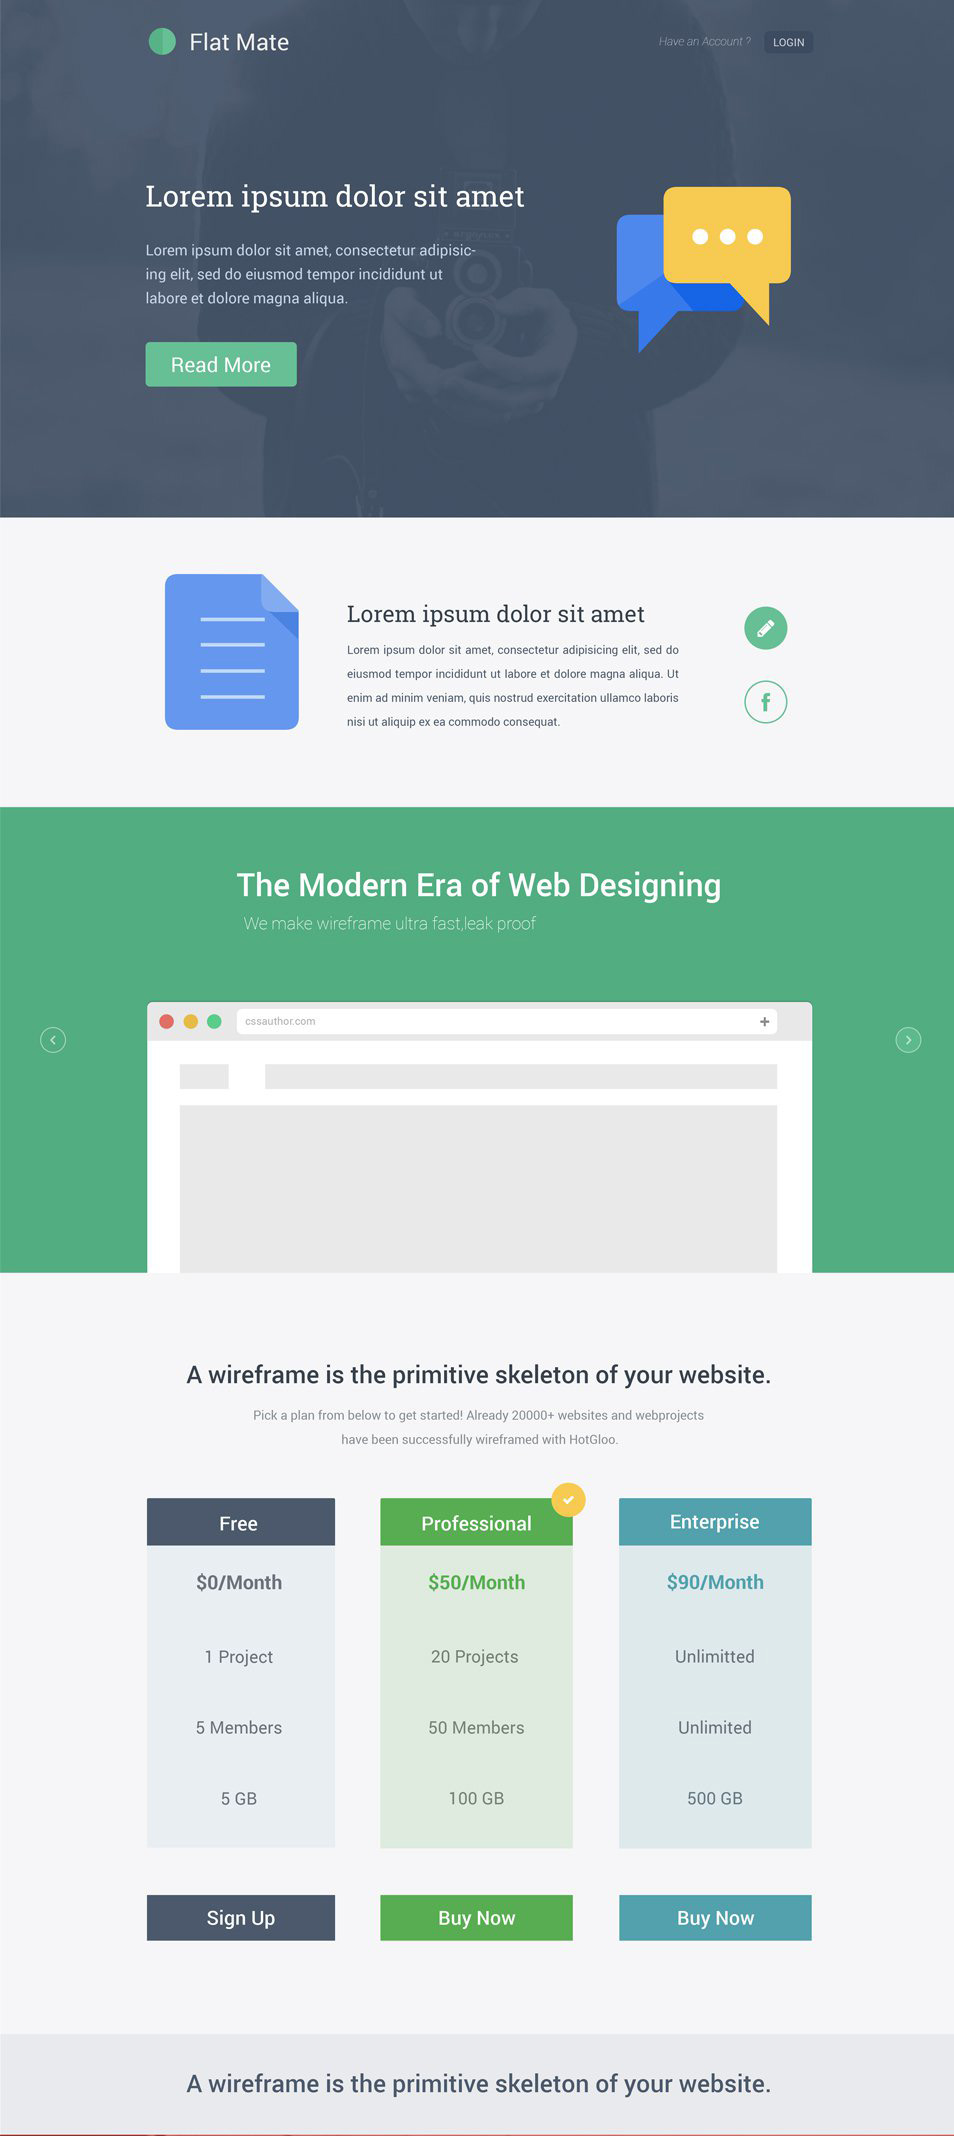 Flat-Mate-Single-Page-Website-Design-Template-PSD-cssauthor.com_